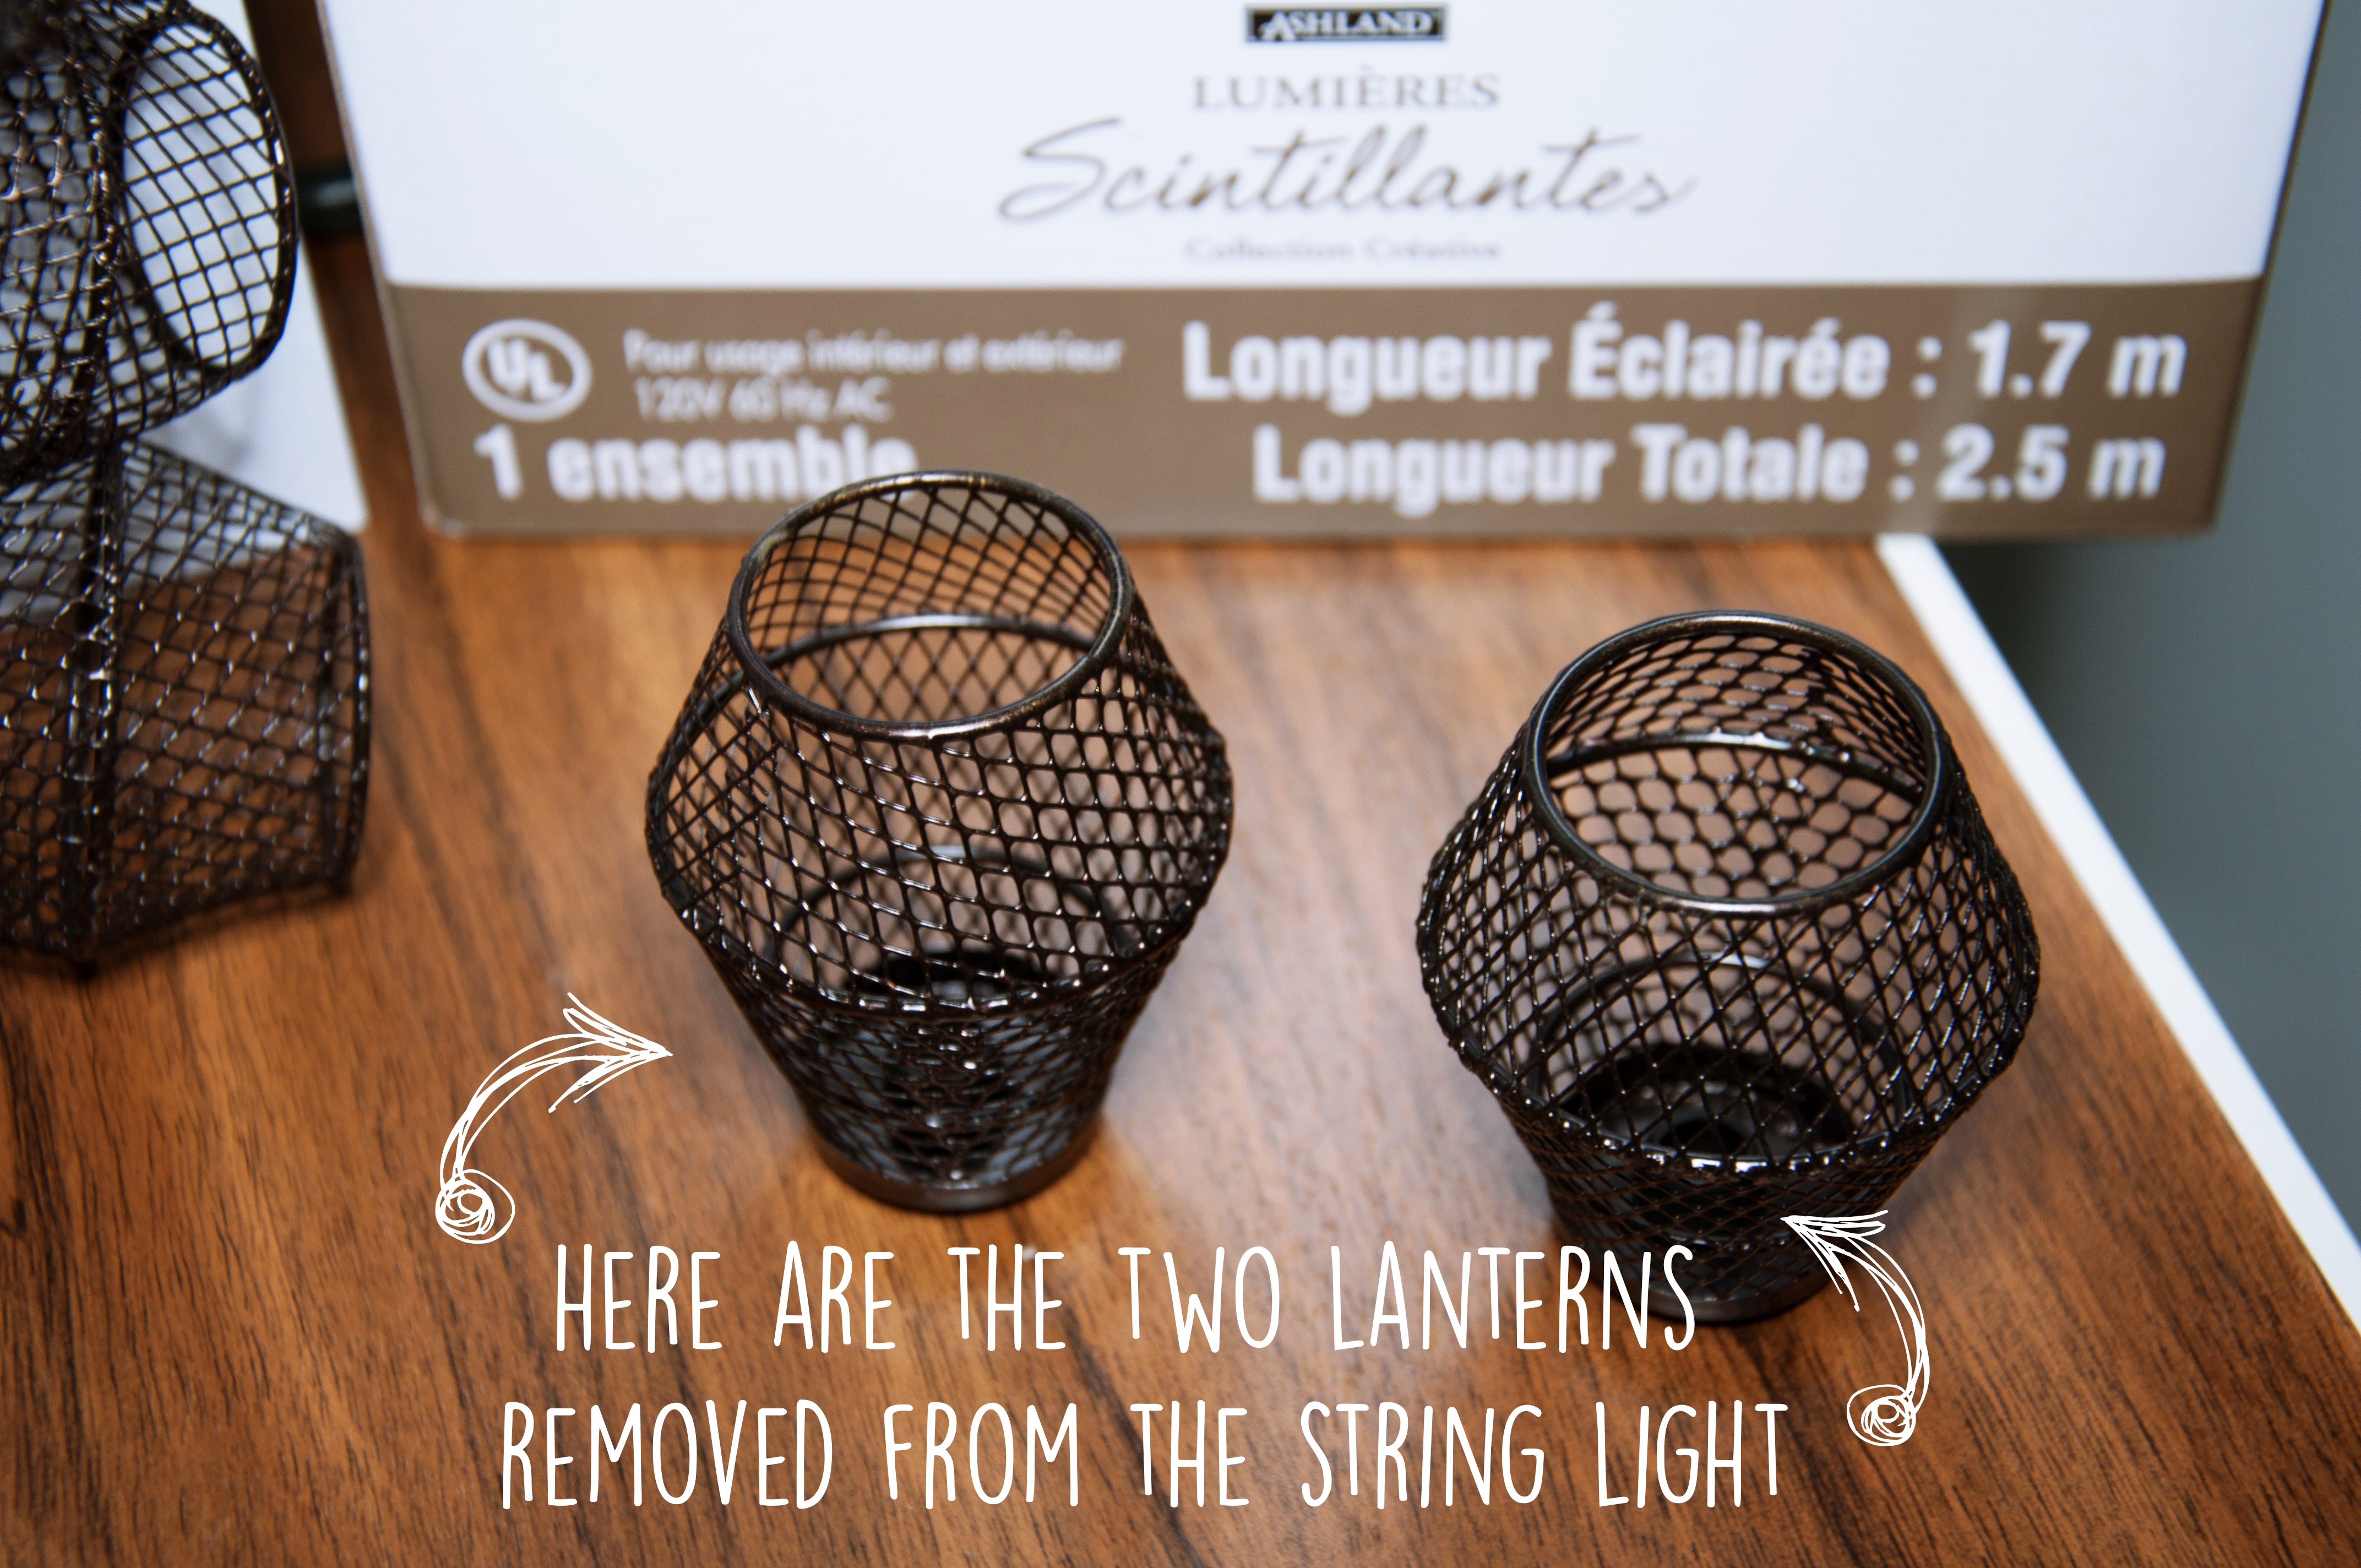 Lanterns1_text copy